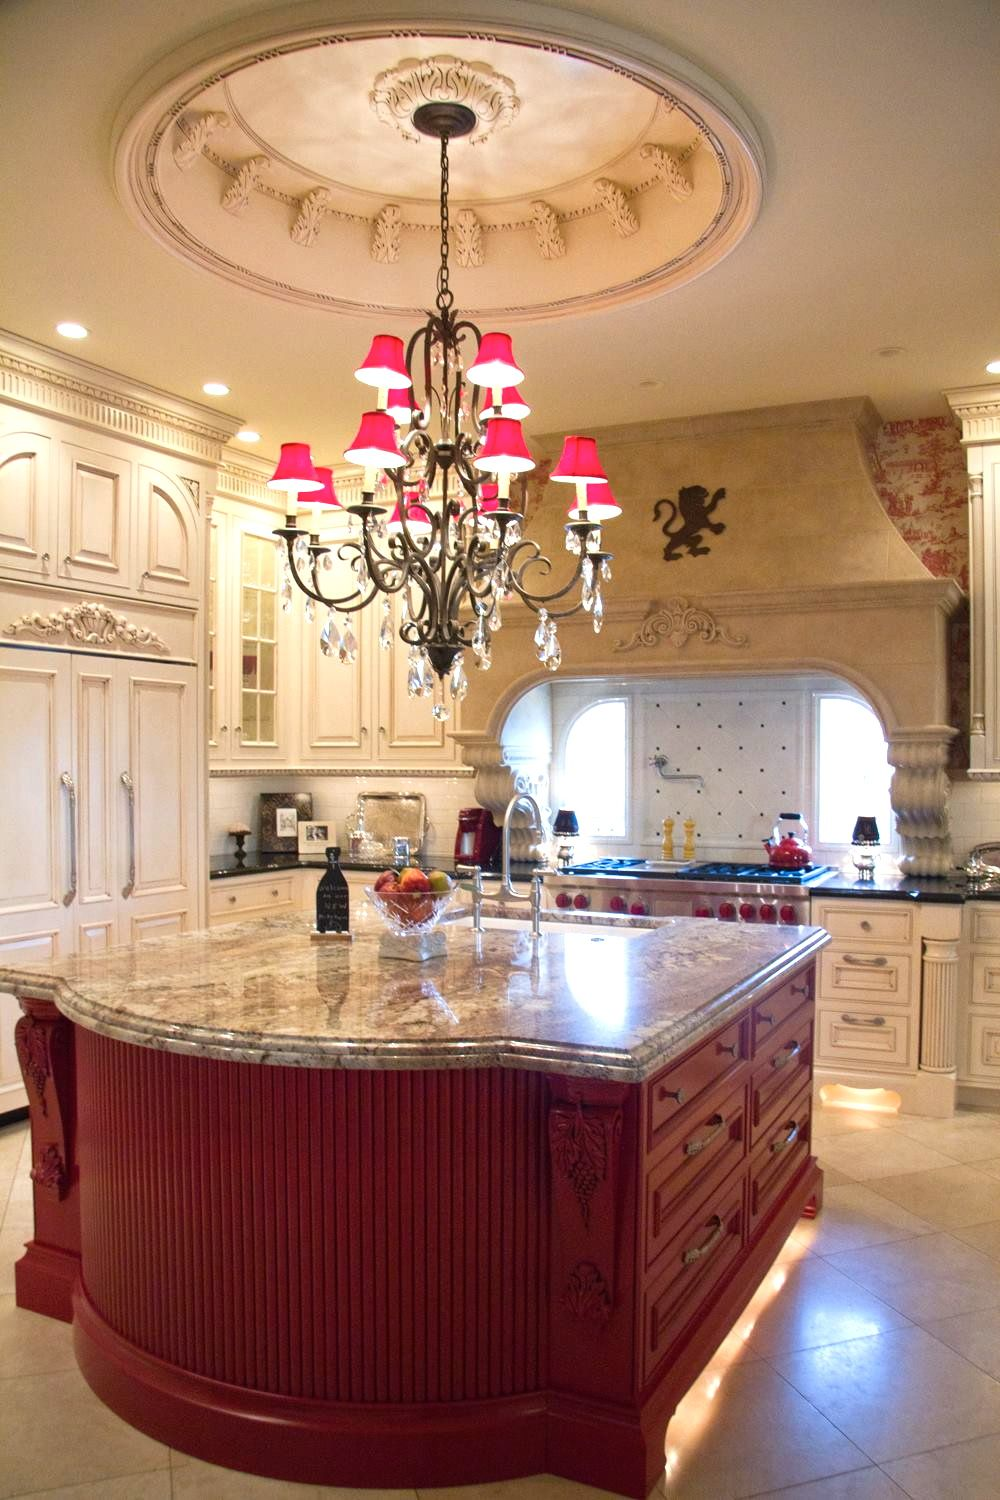 Fancey french country kitchen toile chandelier architectural